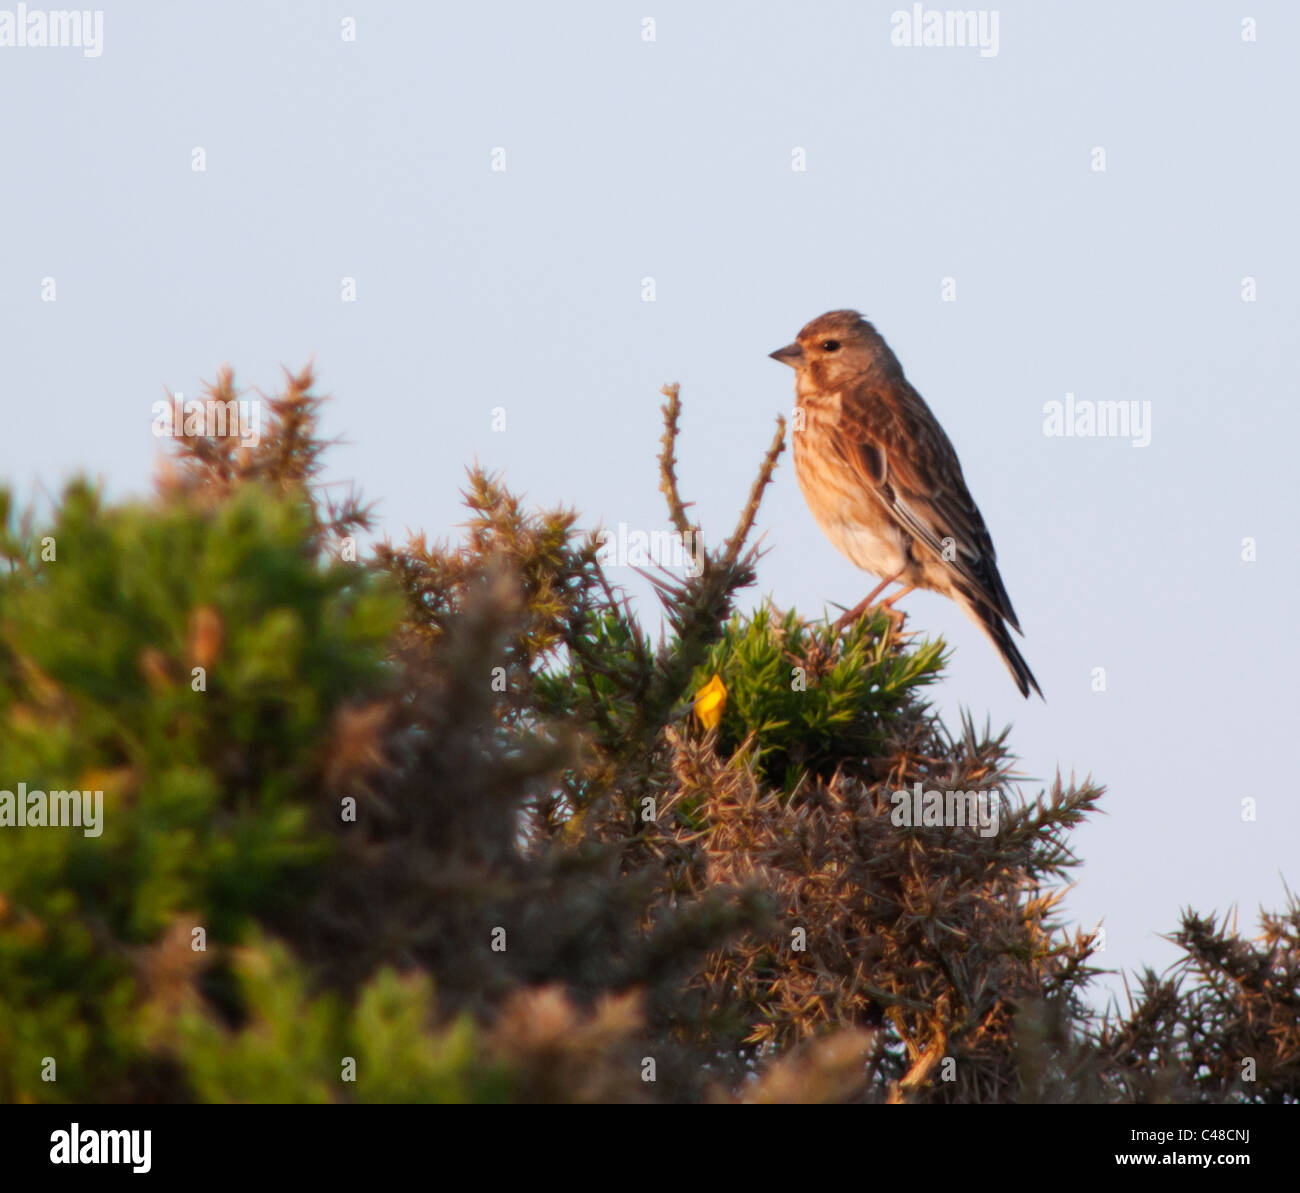 Perched Female Linnet  (Carduelis cannabina) on top of Gorse bush in golden Morning light, Pembrokeshire, Wales - Stock Image